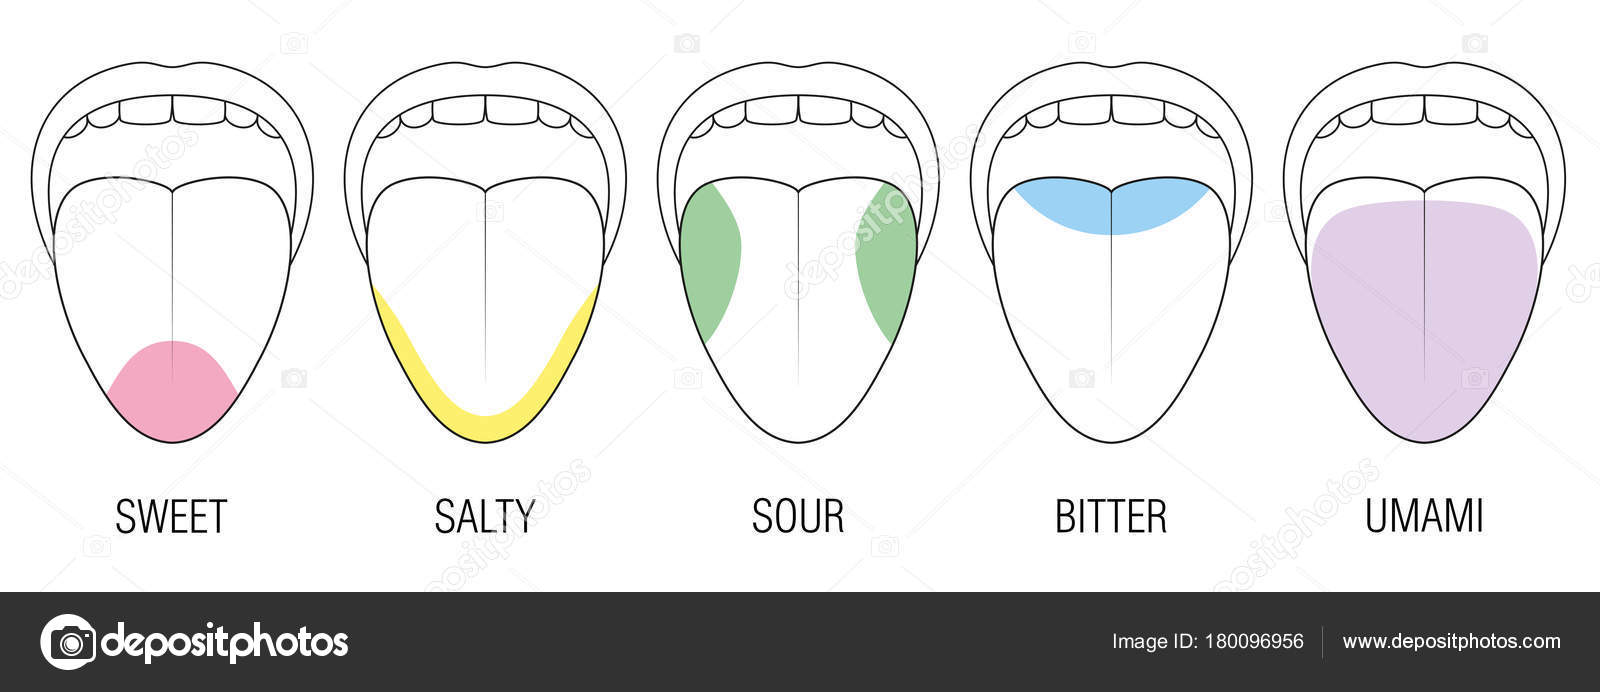 human taste buds diagram 2010 f150 xl radio wiring areas tongue colors illustration stock vector c furian with five bitter sour sweet salty and umami perception colored division zones of different educational